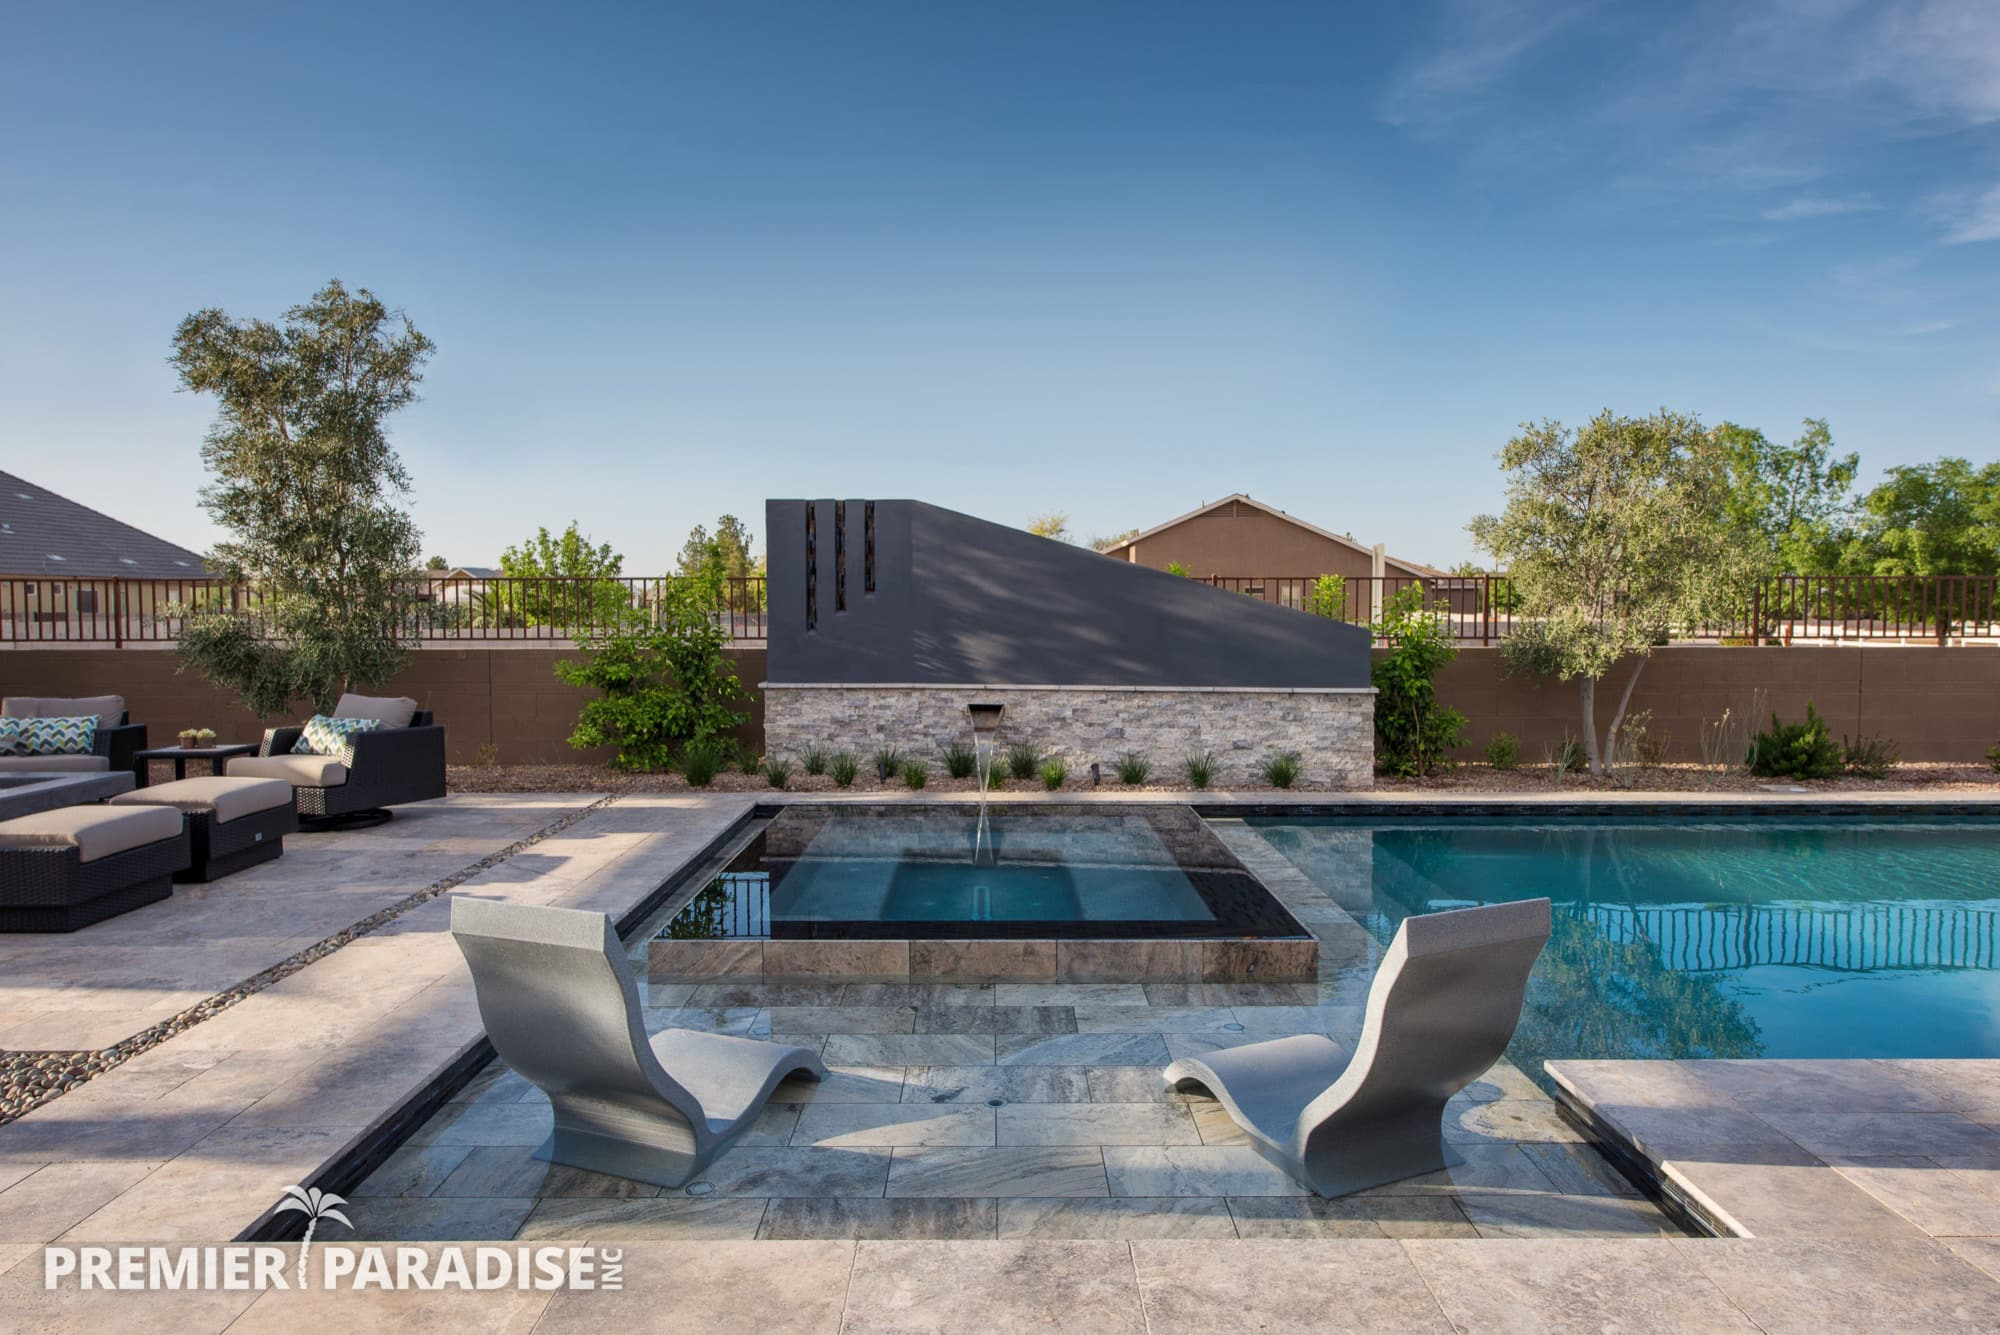 Modern Perimeter Overflow Spa & Luxury Outdoor Living ... on Outdoor Living Spa id=88985